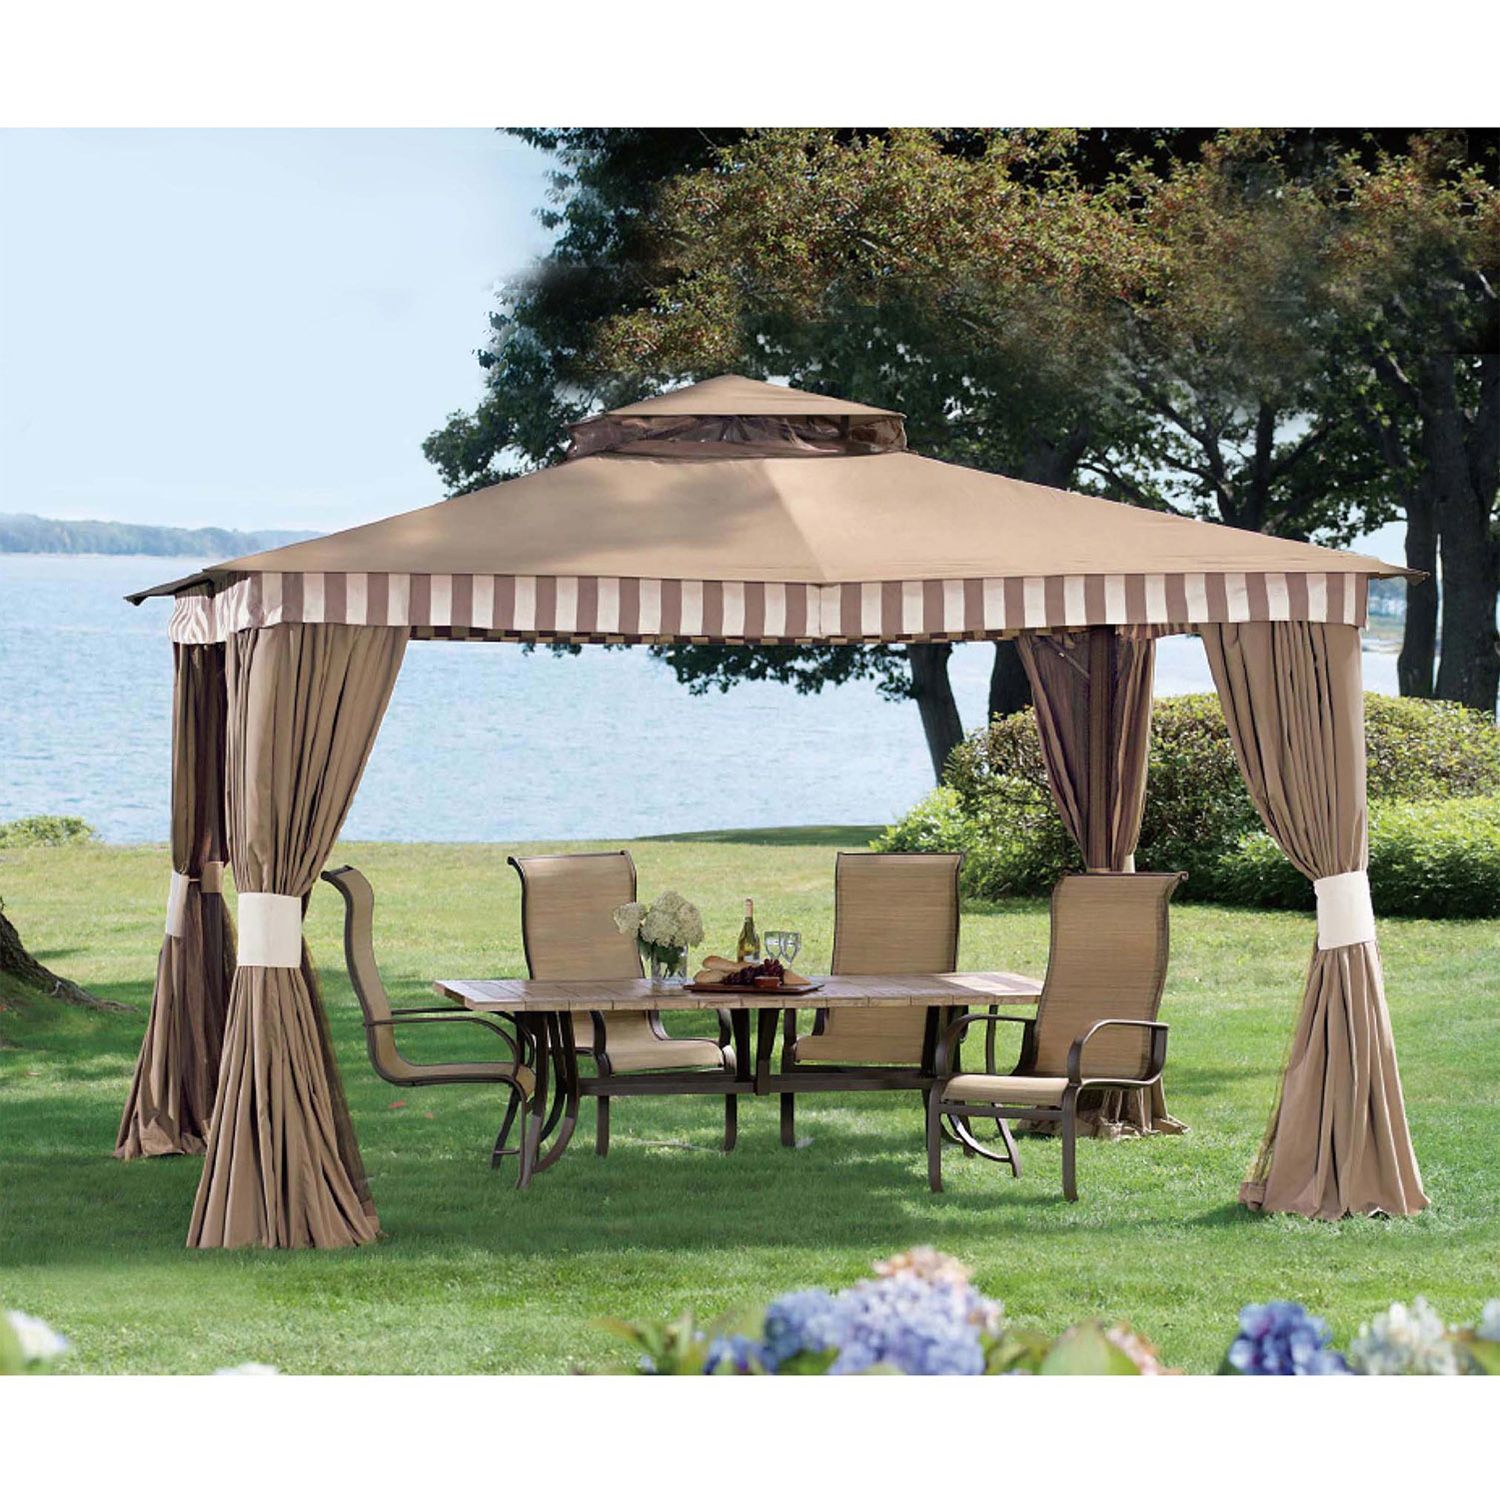 Cute sunjoy gazebo for garden ideas with sunjoy hardtop gazebo and sunjoy grill gazebo